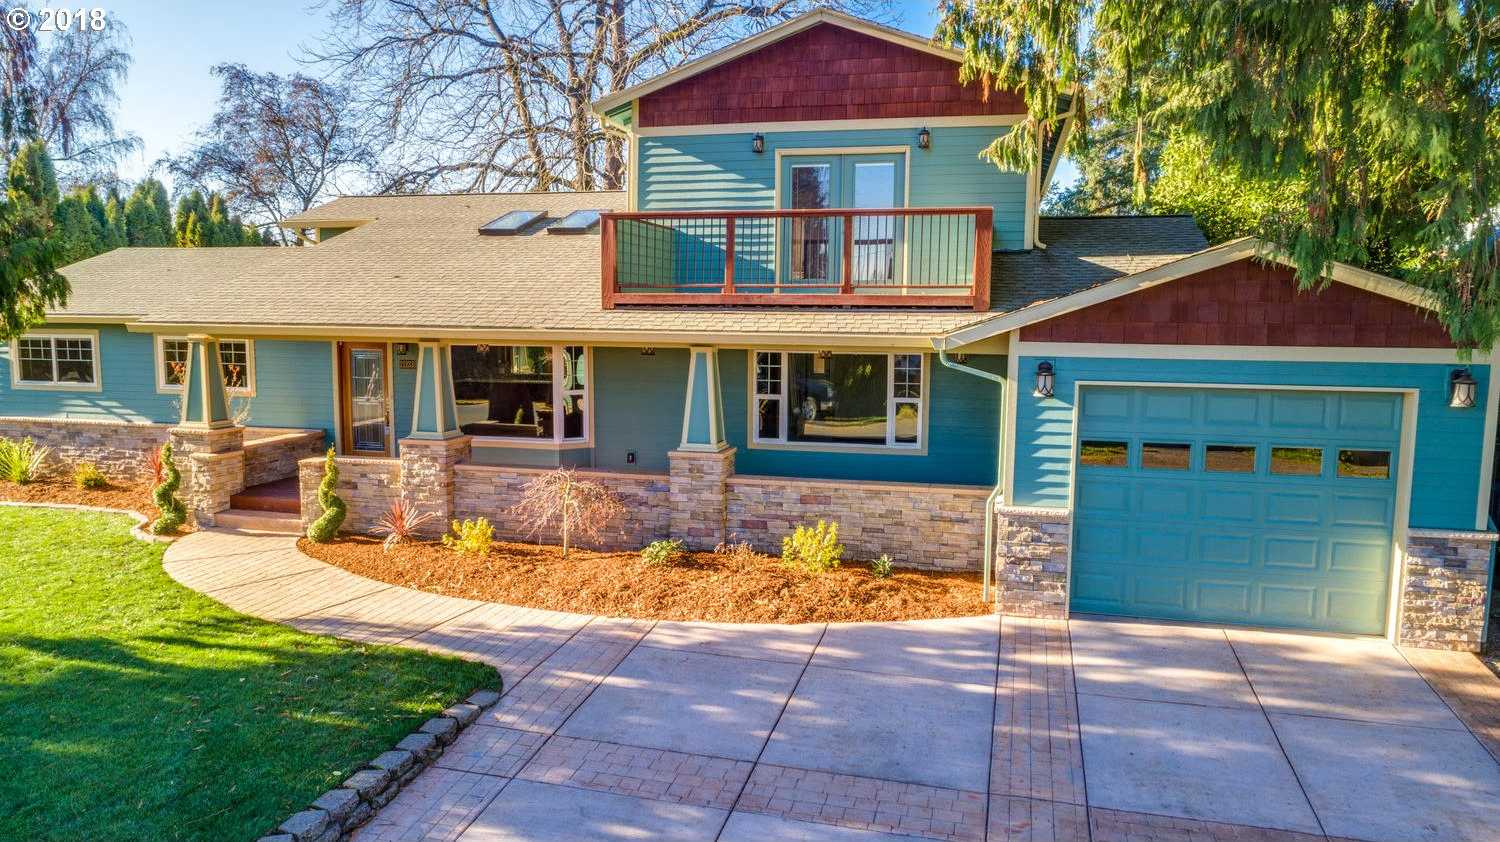 $475,000 - 5Br/3Ba -  for Sale in Snyders Addition, Aurora